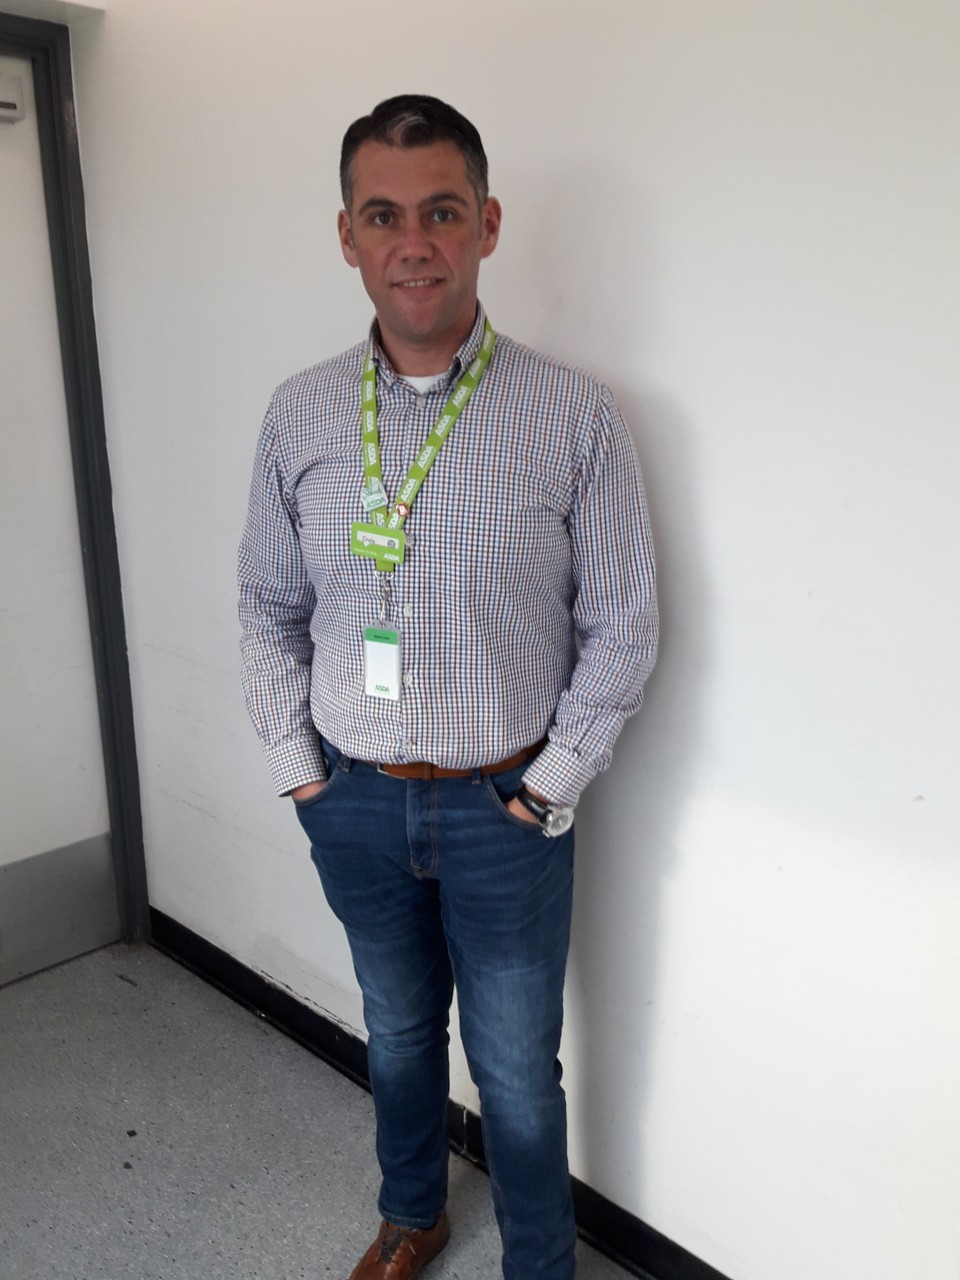 Warm welcome for all from Asda Chatham store manager Craig | Asda Chatham